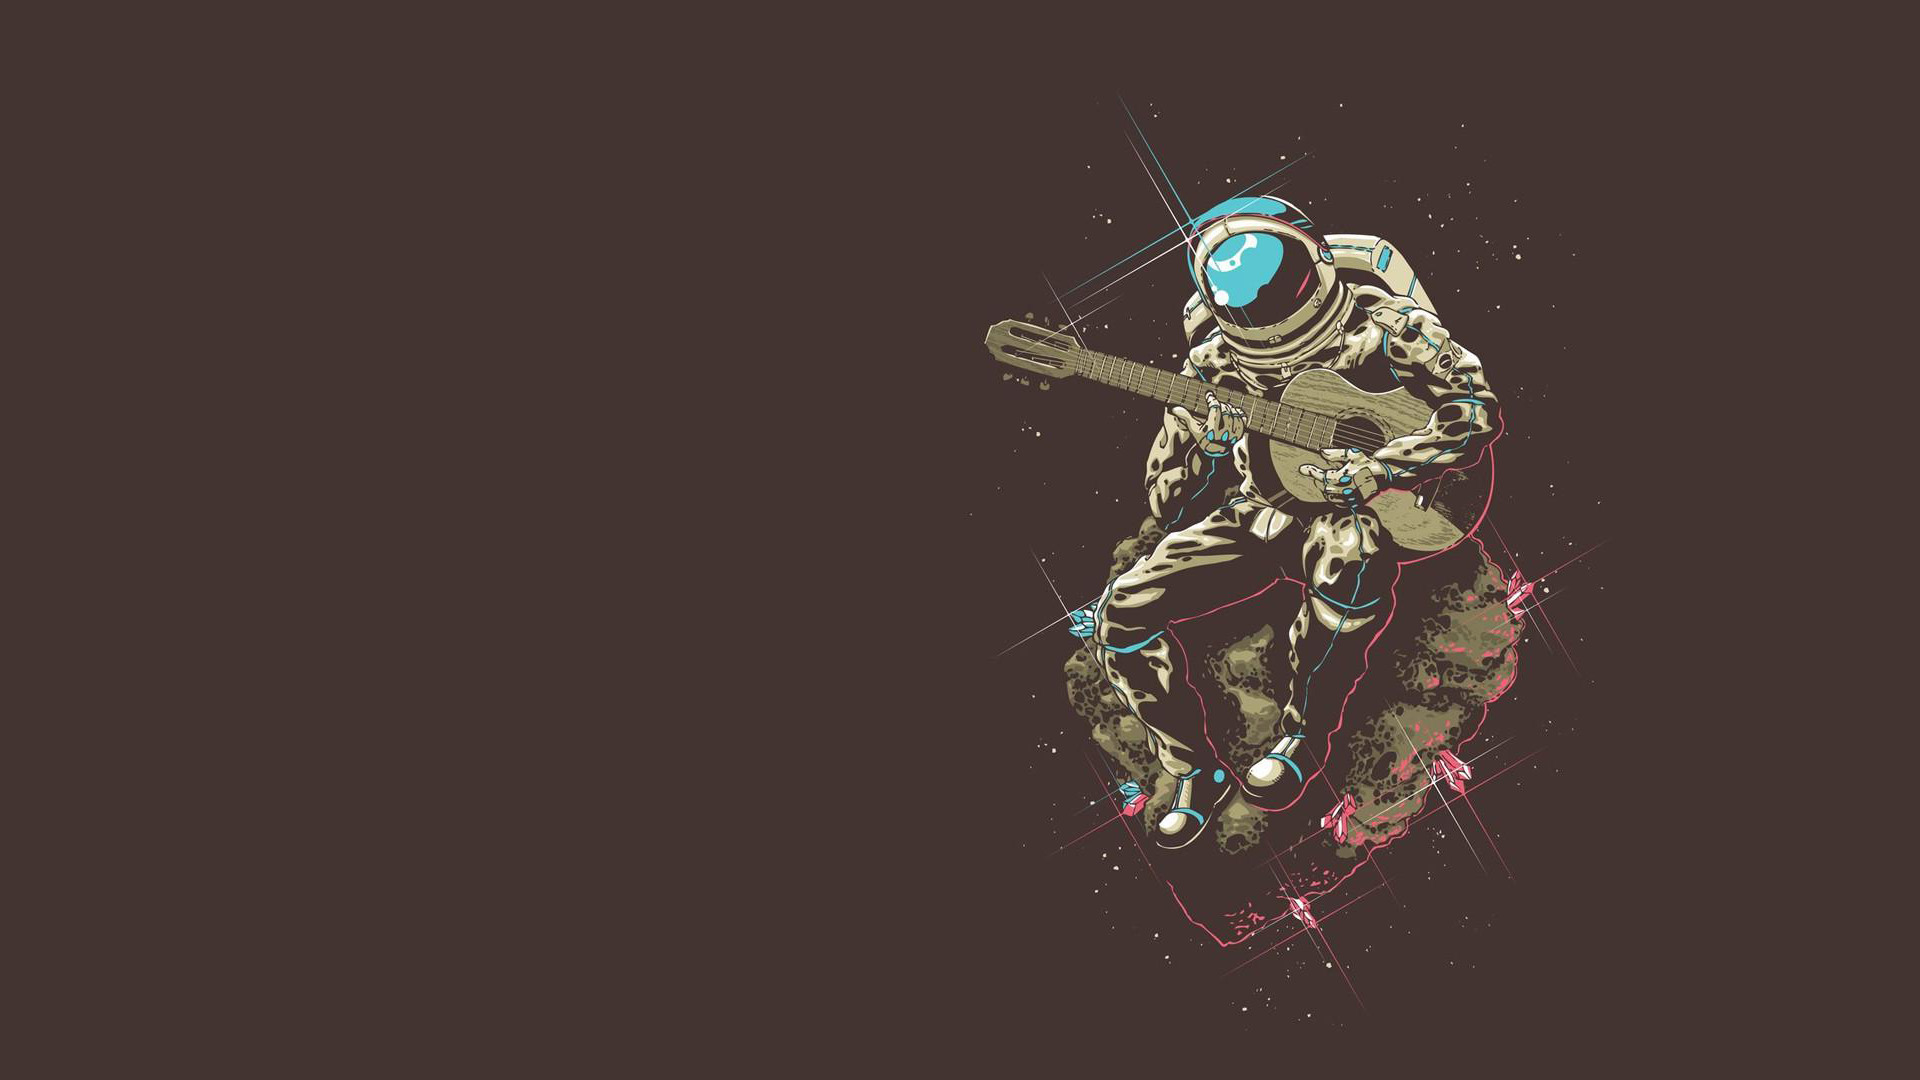 Cartoon Love Wallpaper Full Hd Minimalism Astronaut Space Guitar Asteroid Wallpapers